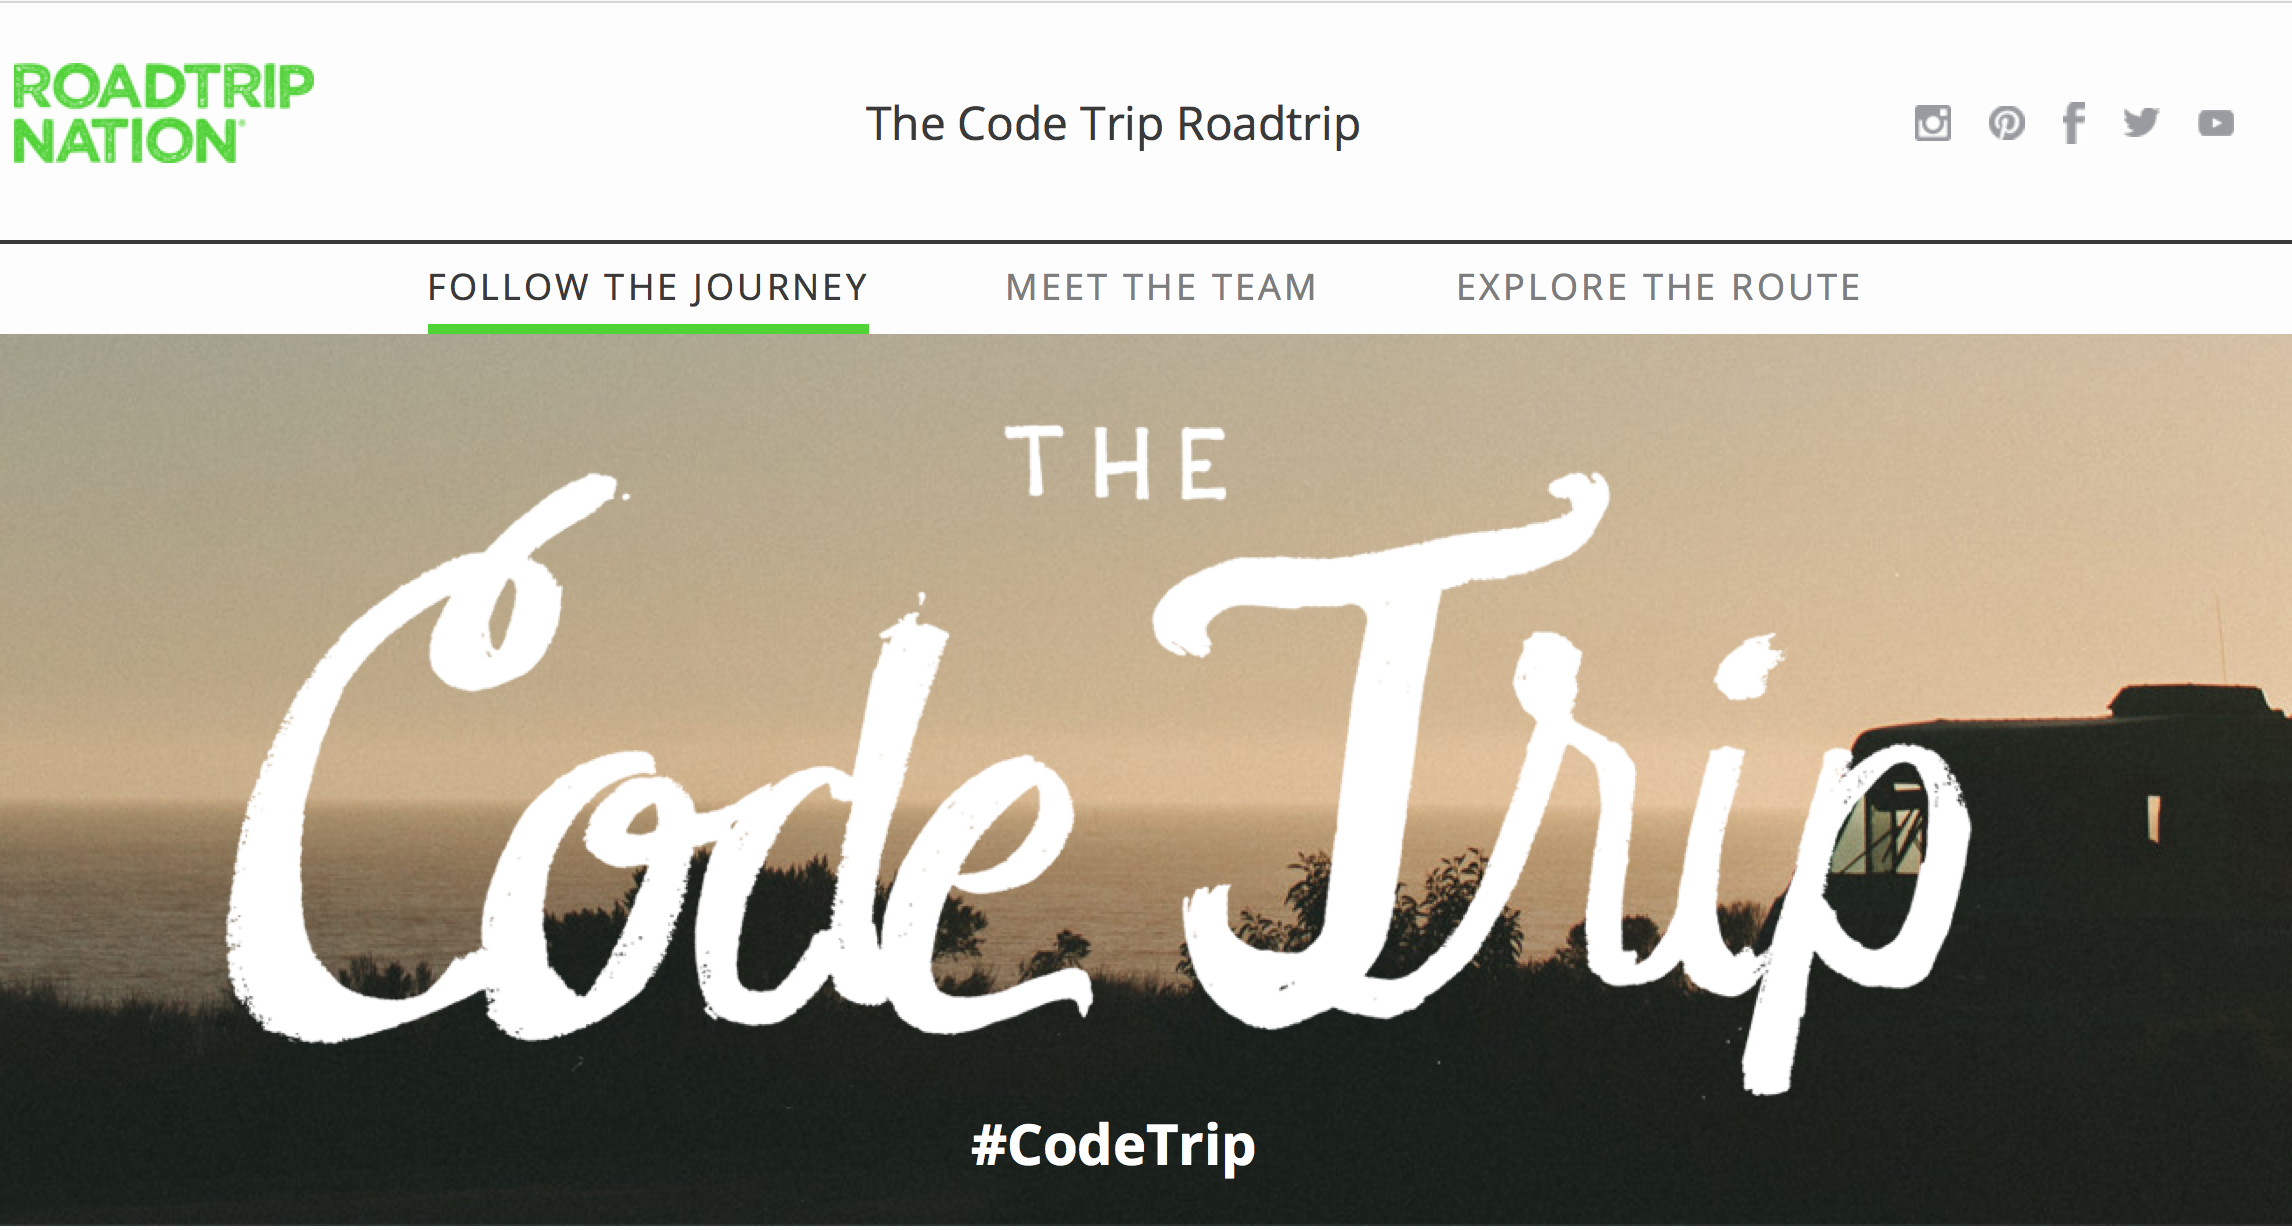 roadtripnation_codetrip